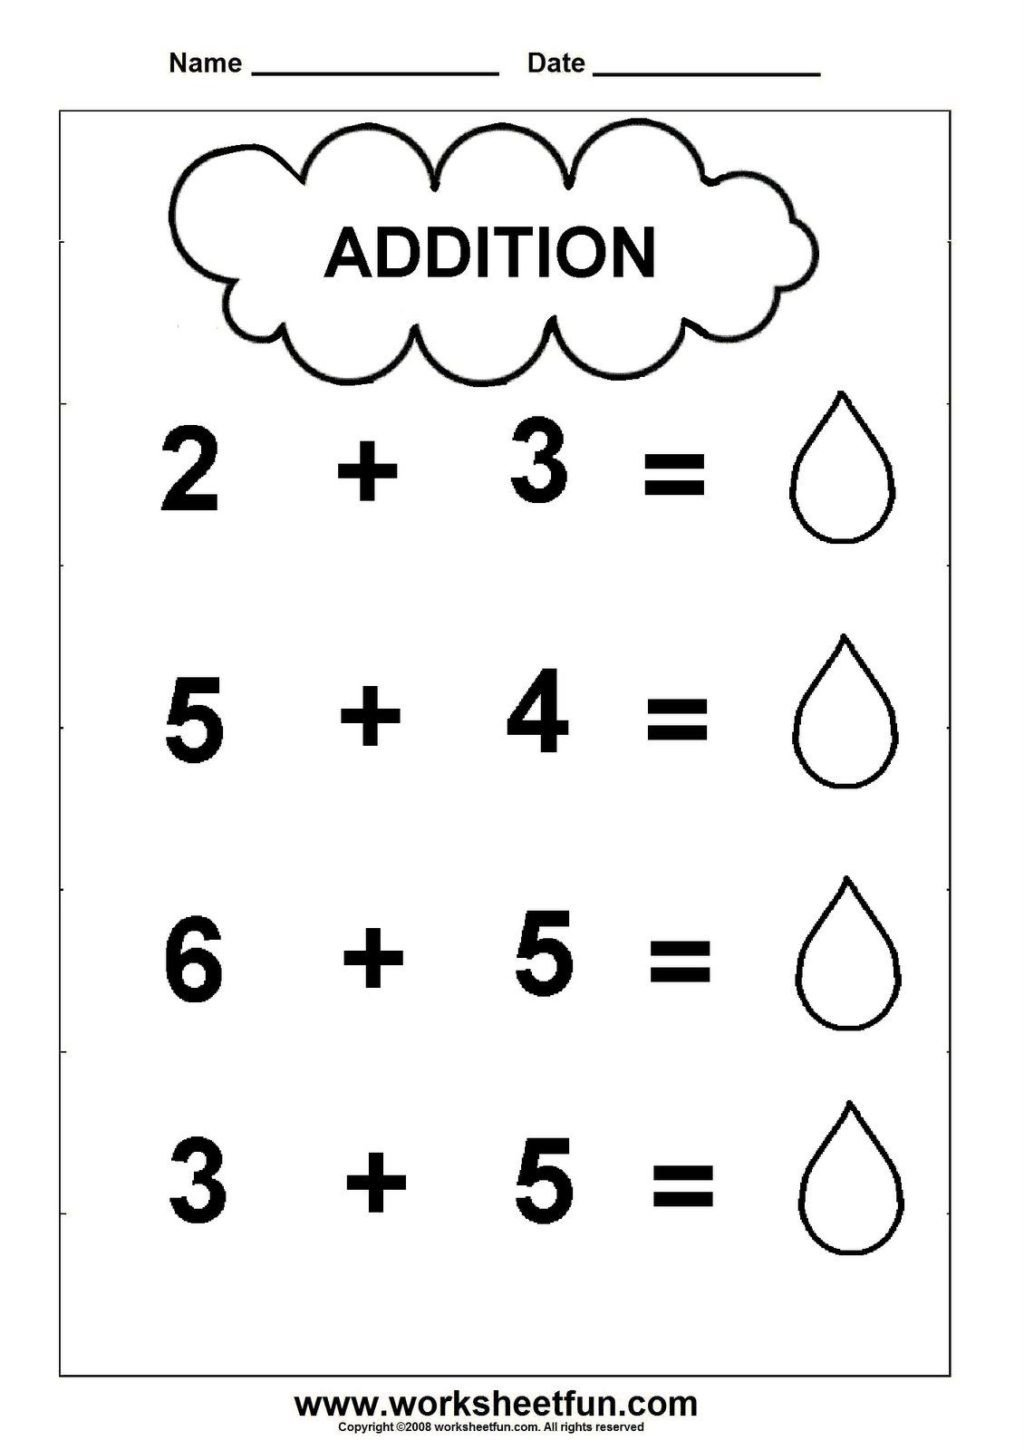 Apple Worksheet for Kindergarten Worksheet Pre Addition Worksheets Worksheet Cloud theme